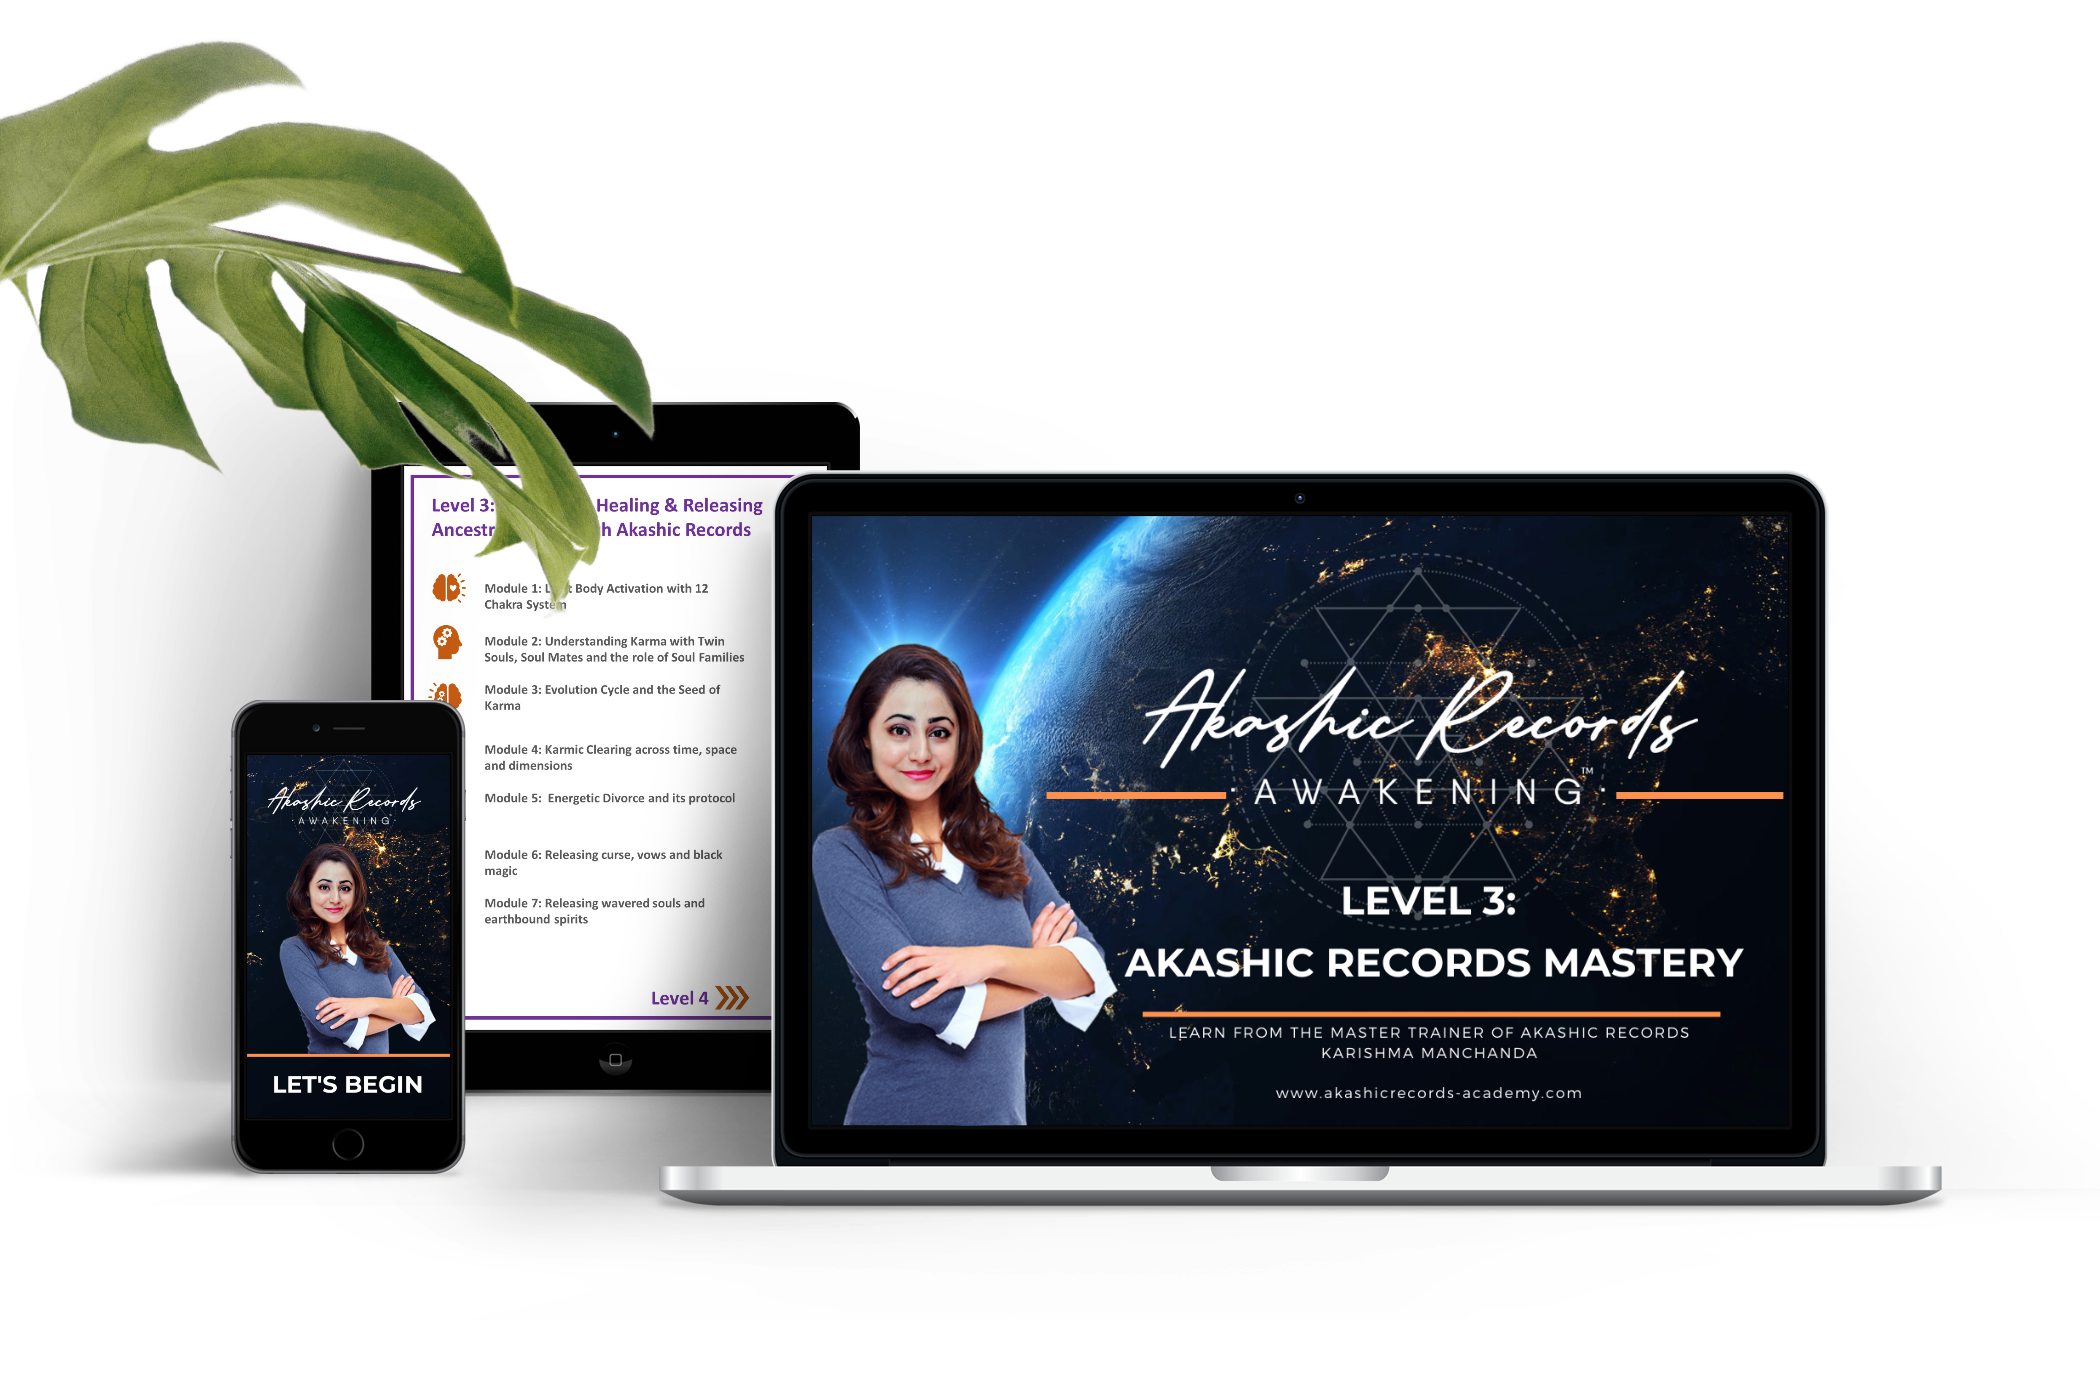 Level 3: Akashic Records Mastery